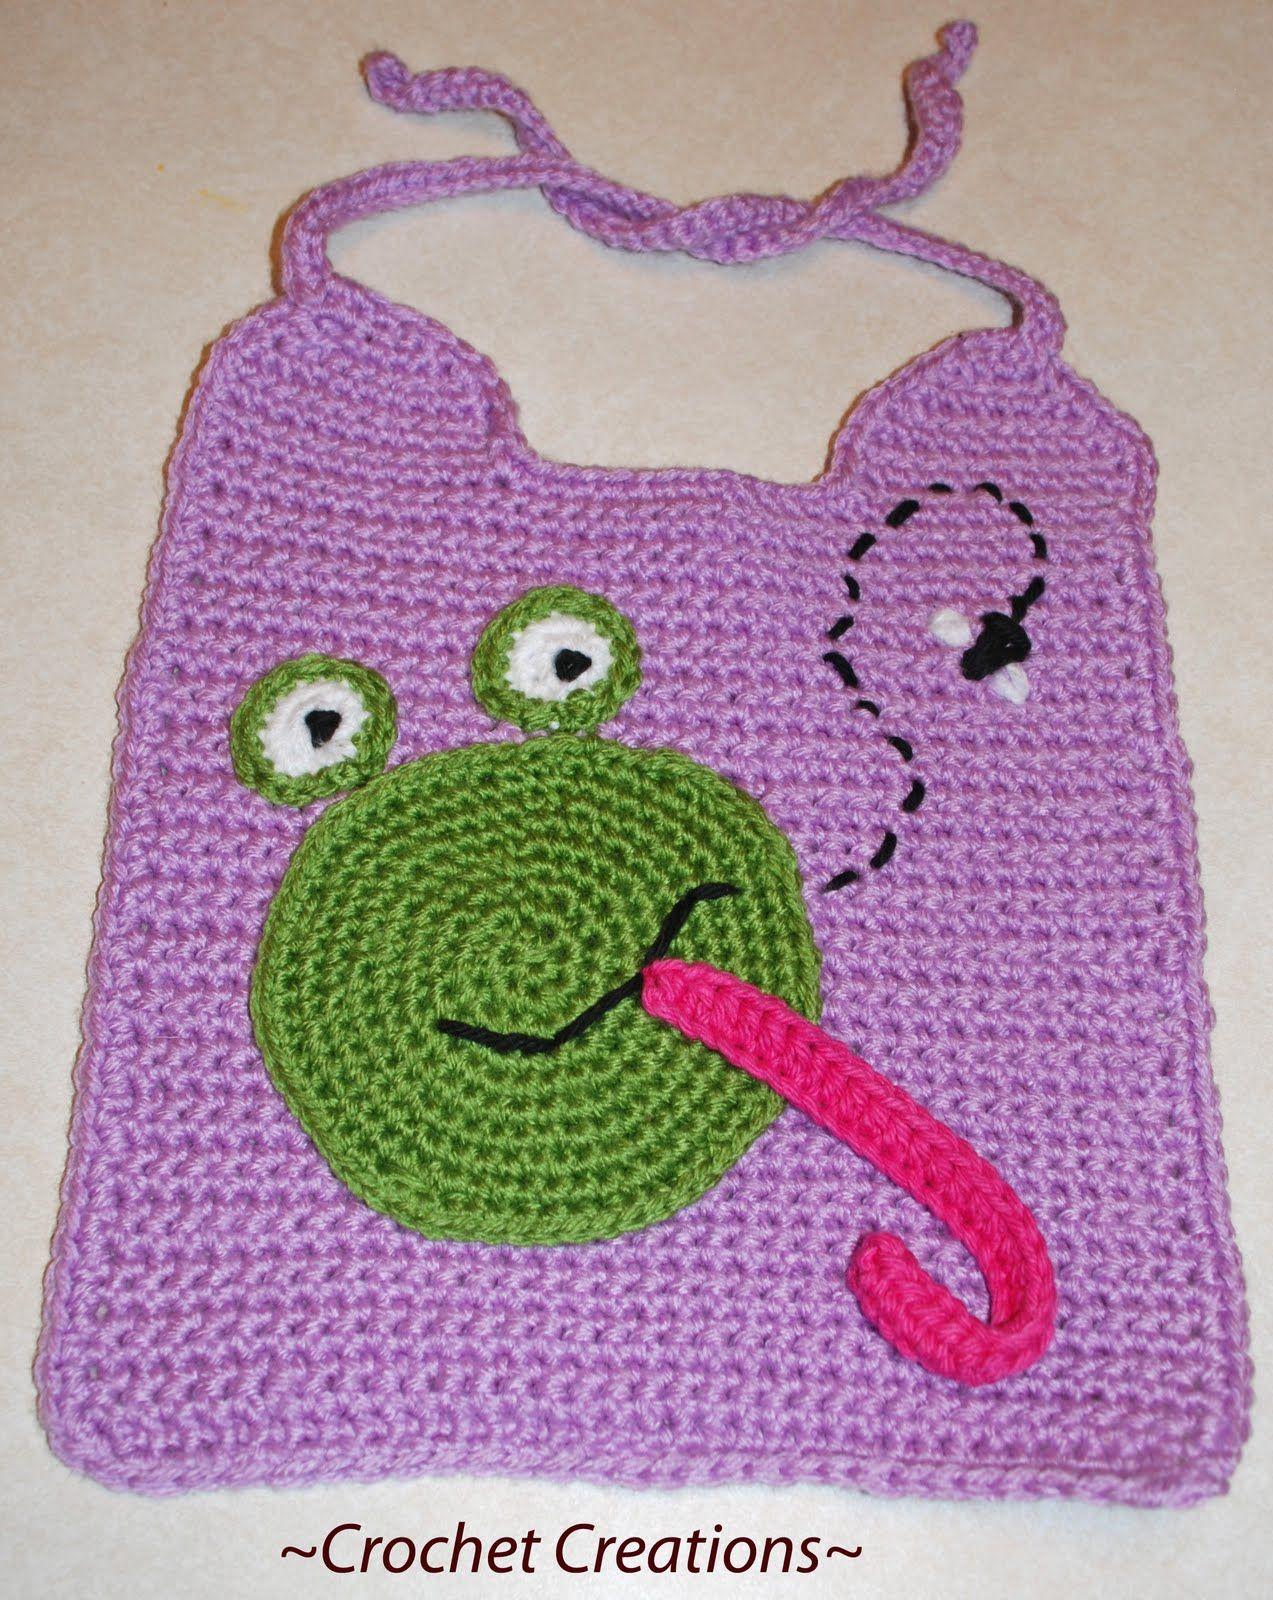 Crochet creative creations free patterns and instructions frog crochet creative creations free patterns and instructions frog bib bankloansurffo Gallery